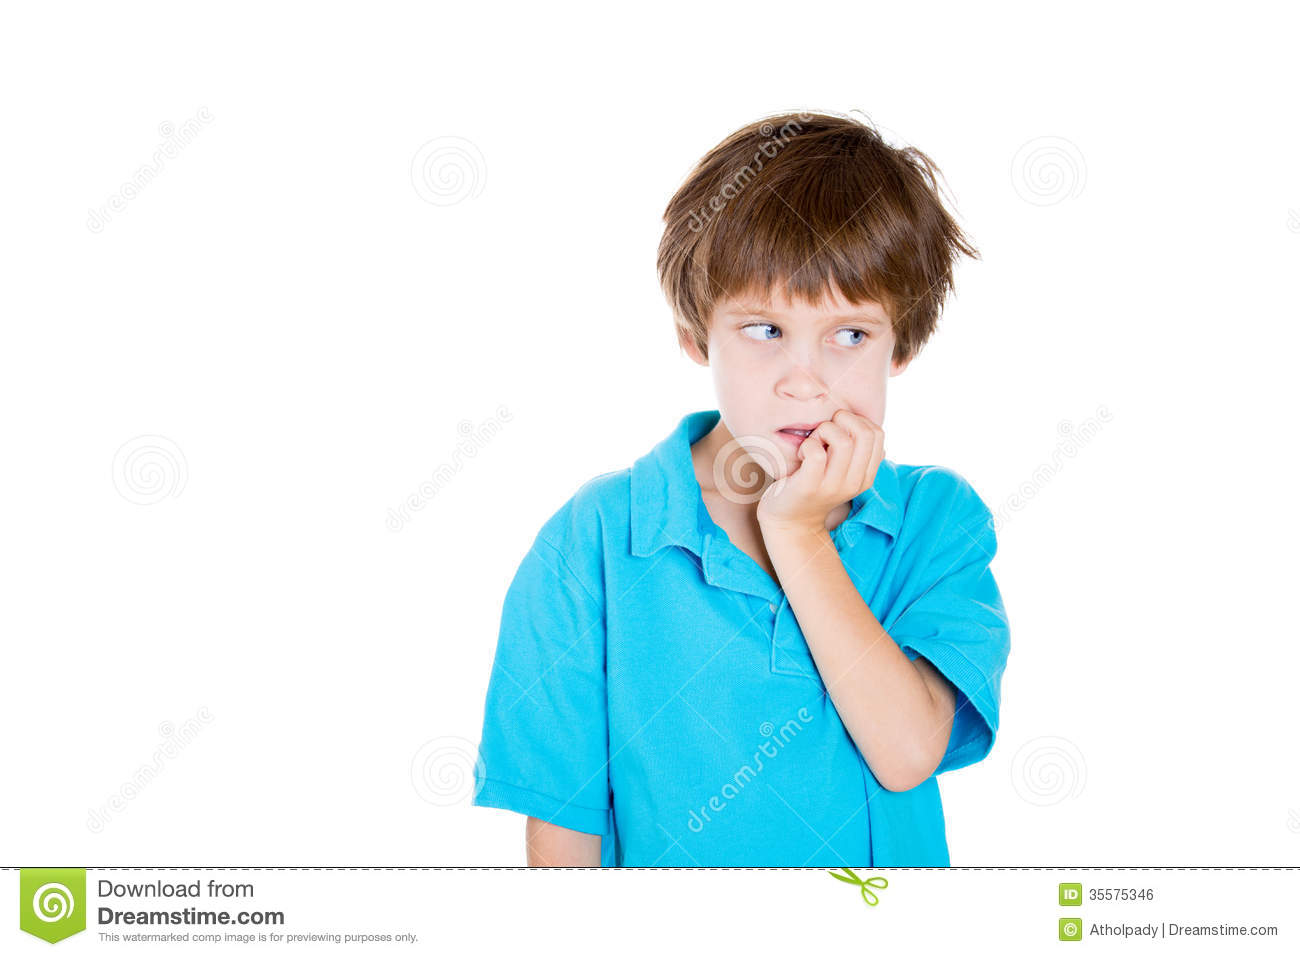 Kid Looking Sideways Biting Nails In Anxiety Stock Photo Image Of